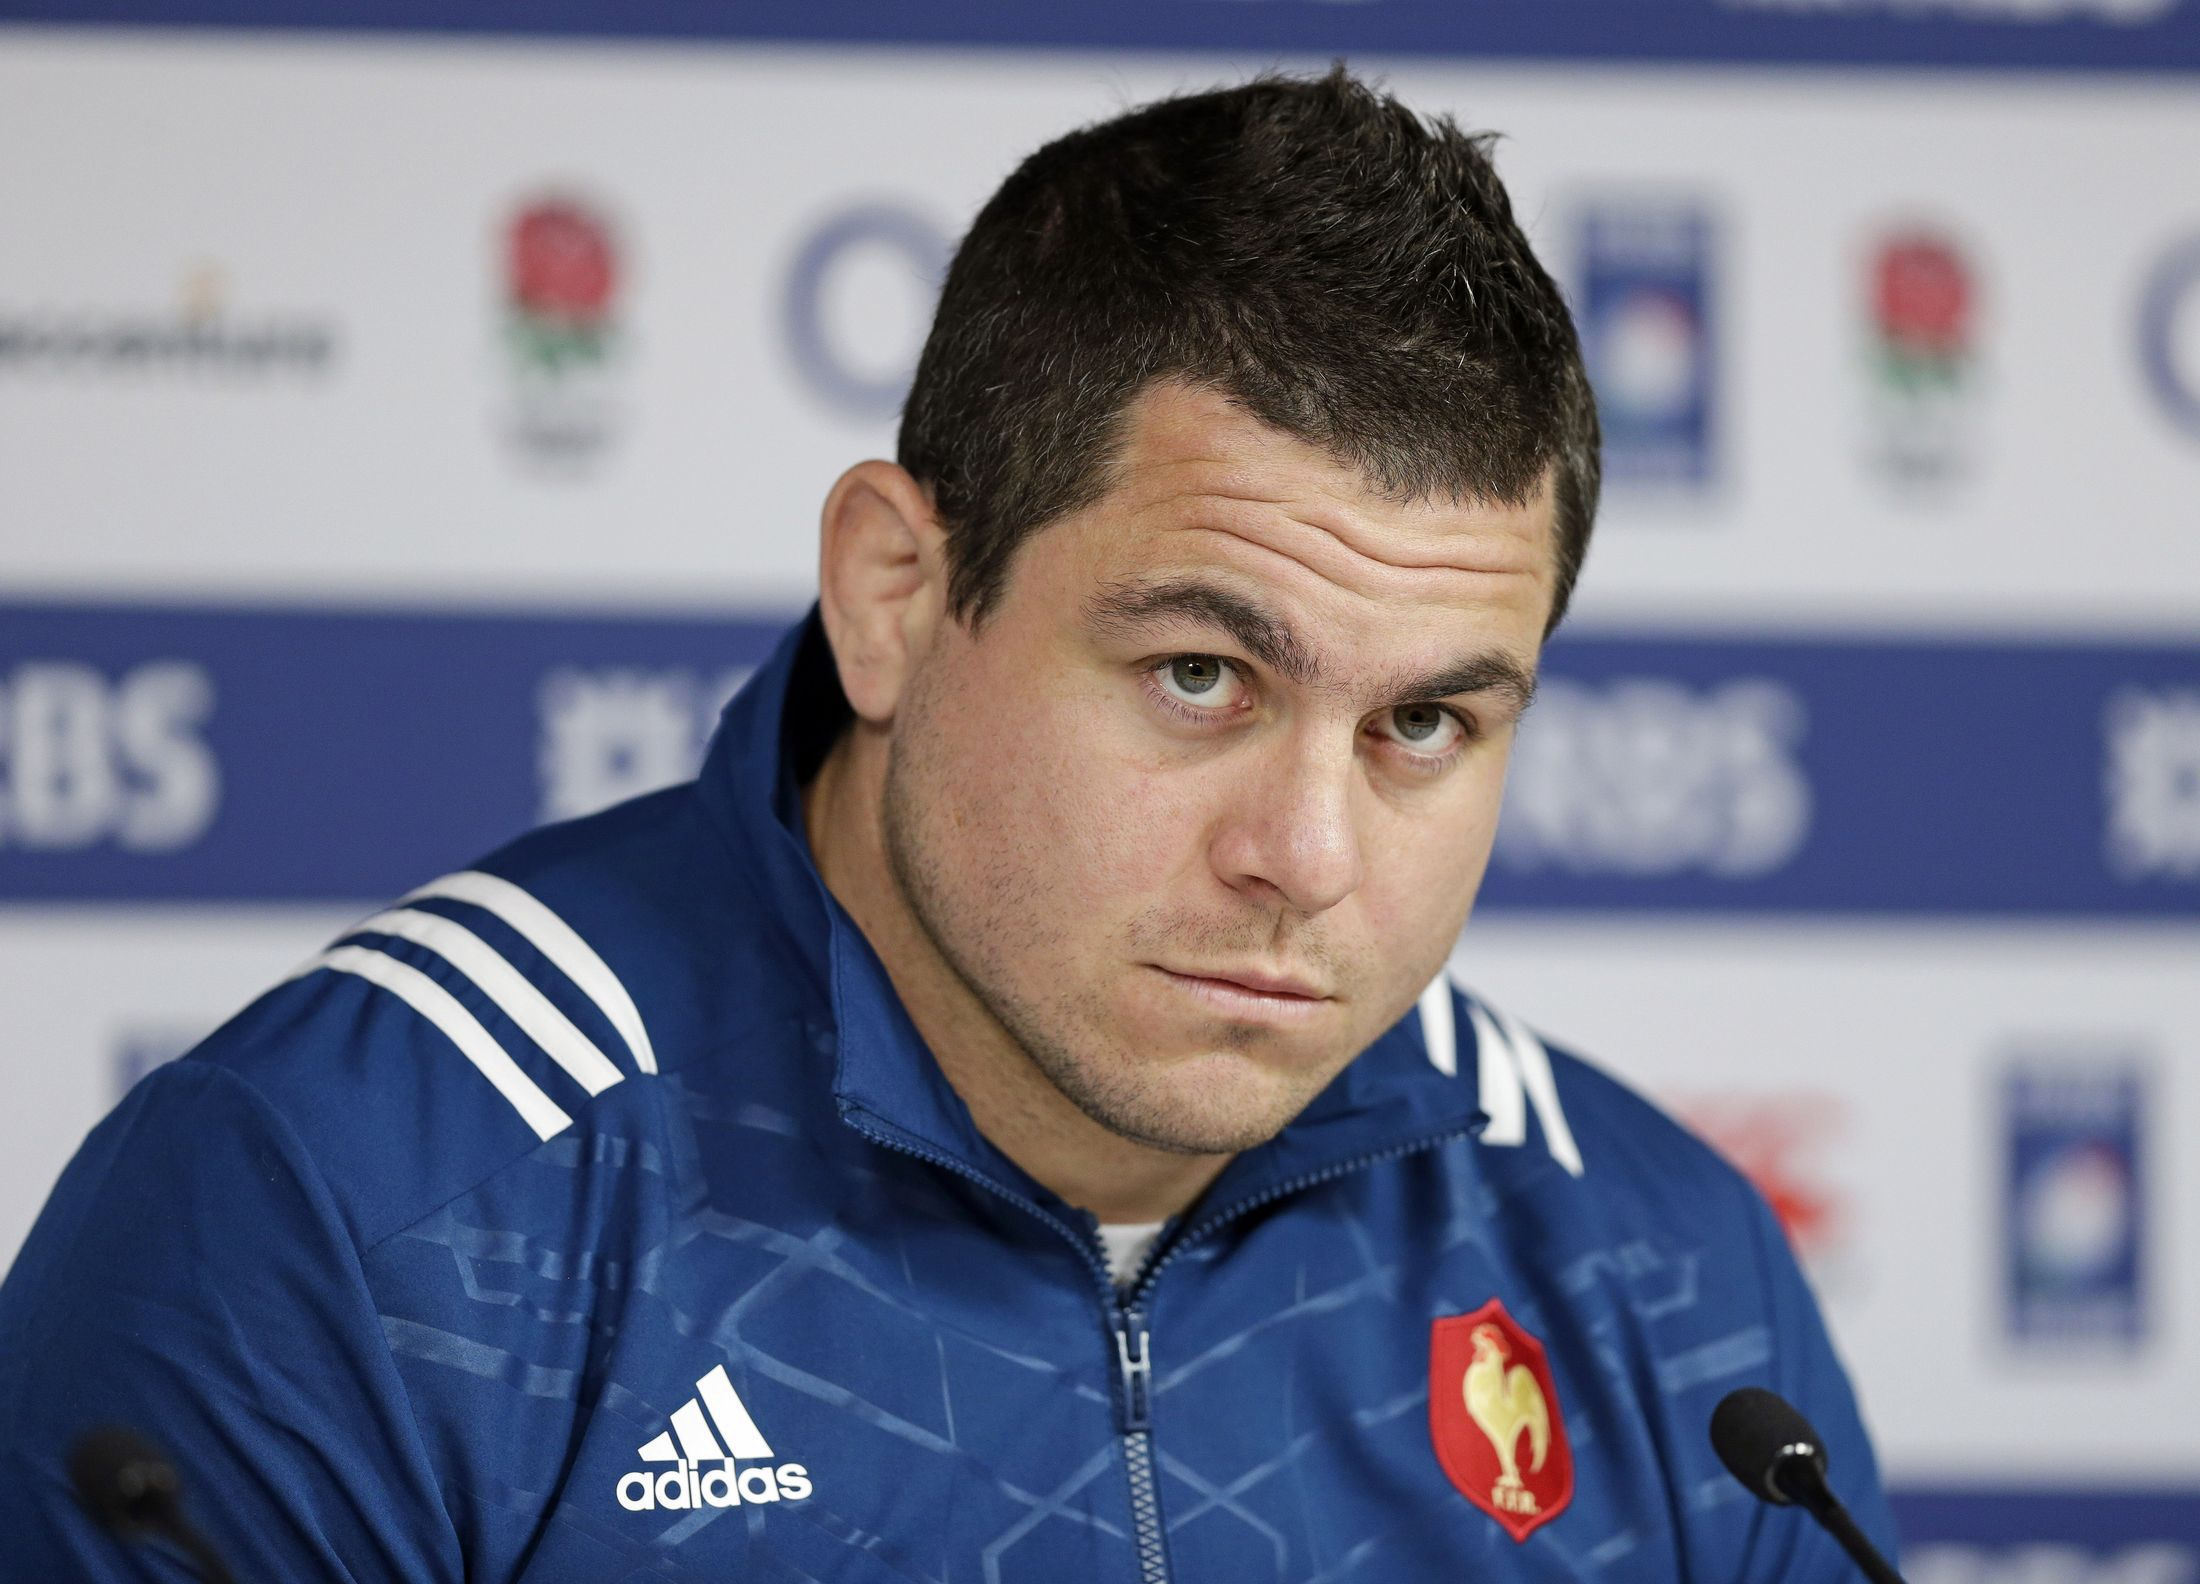 Rugby - XV de France - Brunel confirme Guirado comme capitaine